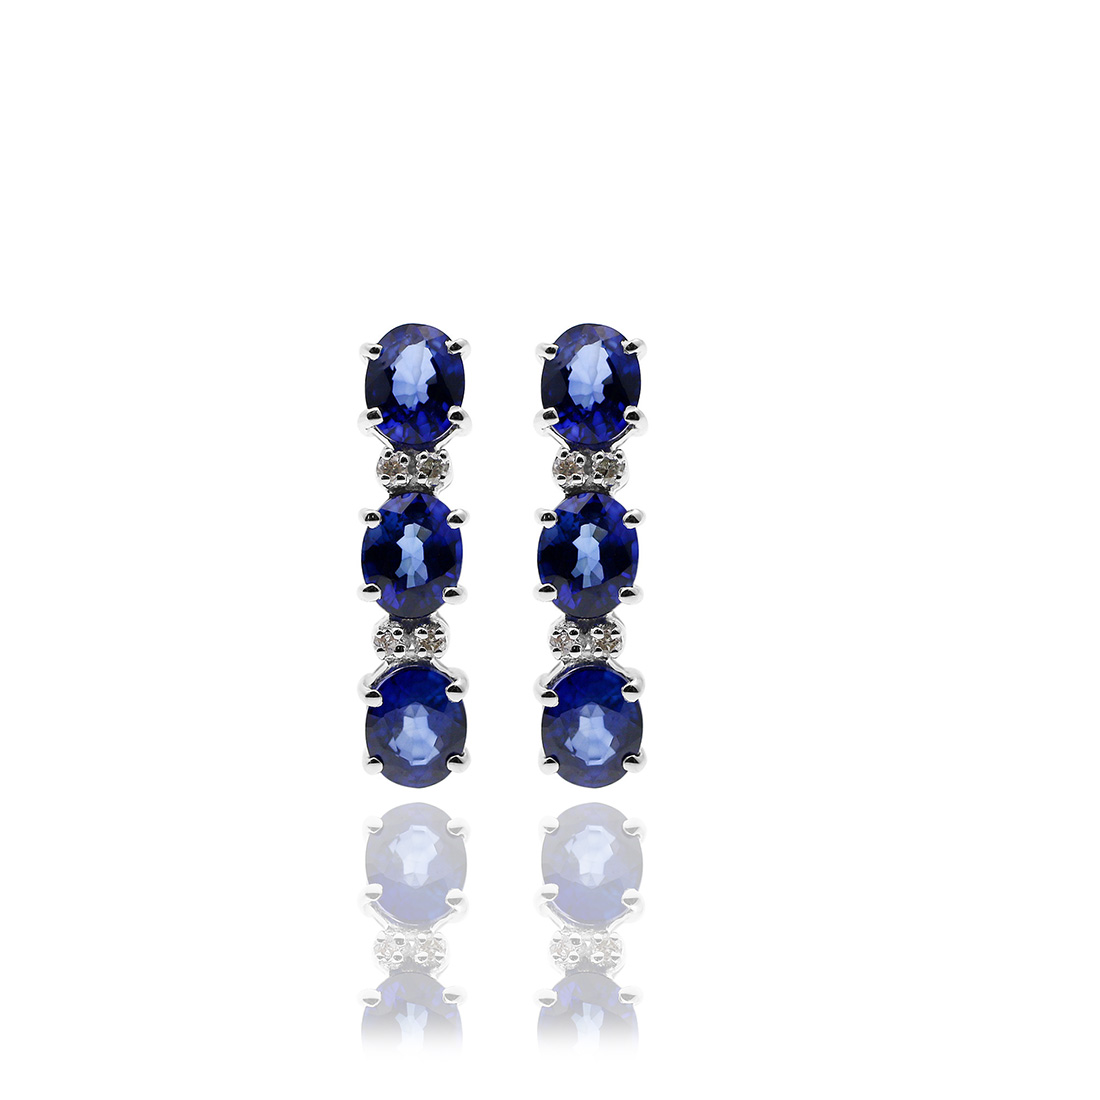 Vintage Classic Earring E1739-BS